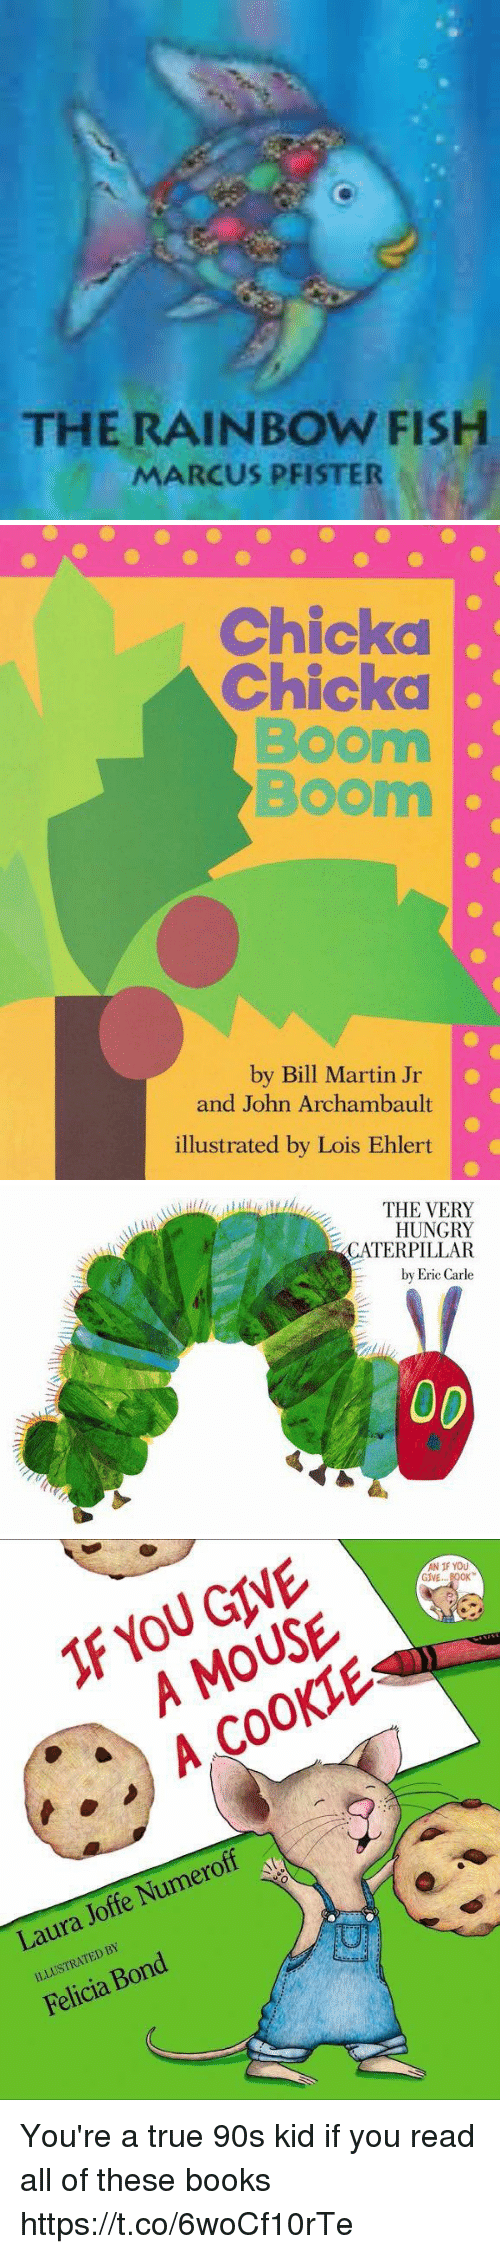 chicka: THE RAINBOW FISH  MARCUS PFISTER   Chickd  Chicka  Boom  Boom  by Bill Martin Jr  and John Archambault  illustrated by Lois Ehlert   THE VERY  HUNGRY  CATERPILLAR  by Eric Carle   F YOU GIVE  A MOUSE  A COOKIE  AN IF YOU  GIVE... BOK  Laura Joffe Numeroff  ILLUSTRATED BY  Felicia Bond You're a true 90s kid if you read all of these books https://t.co/6woCf10rTe